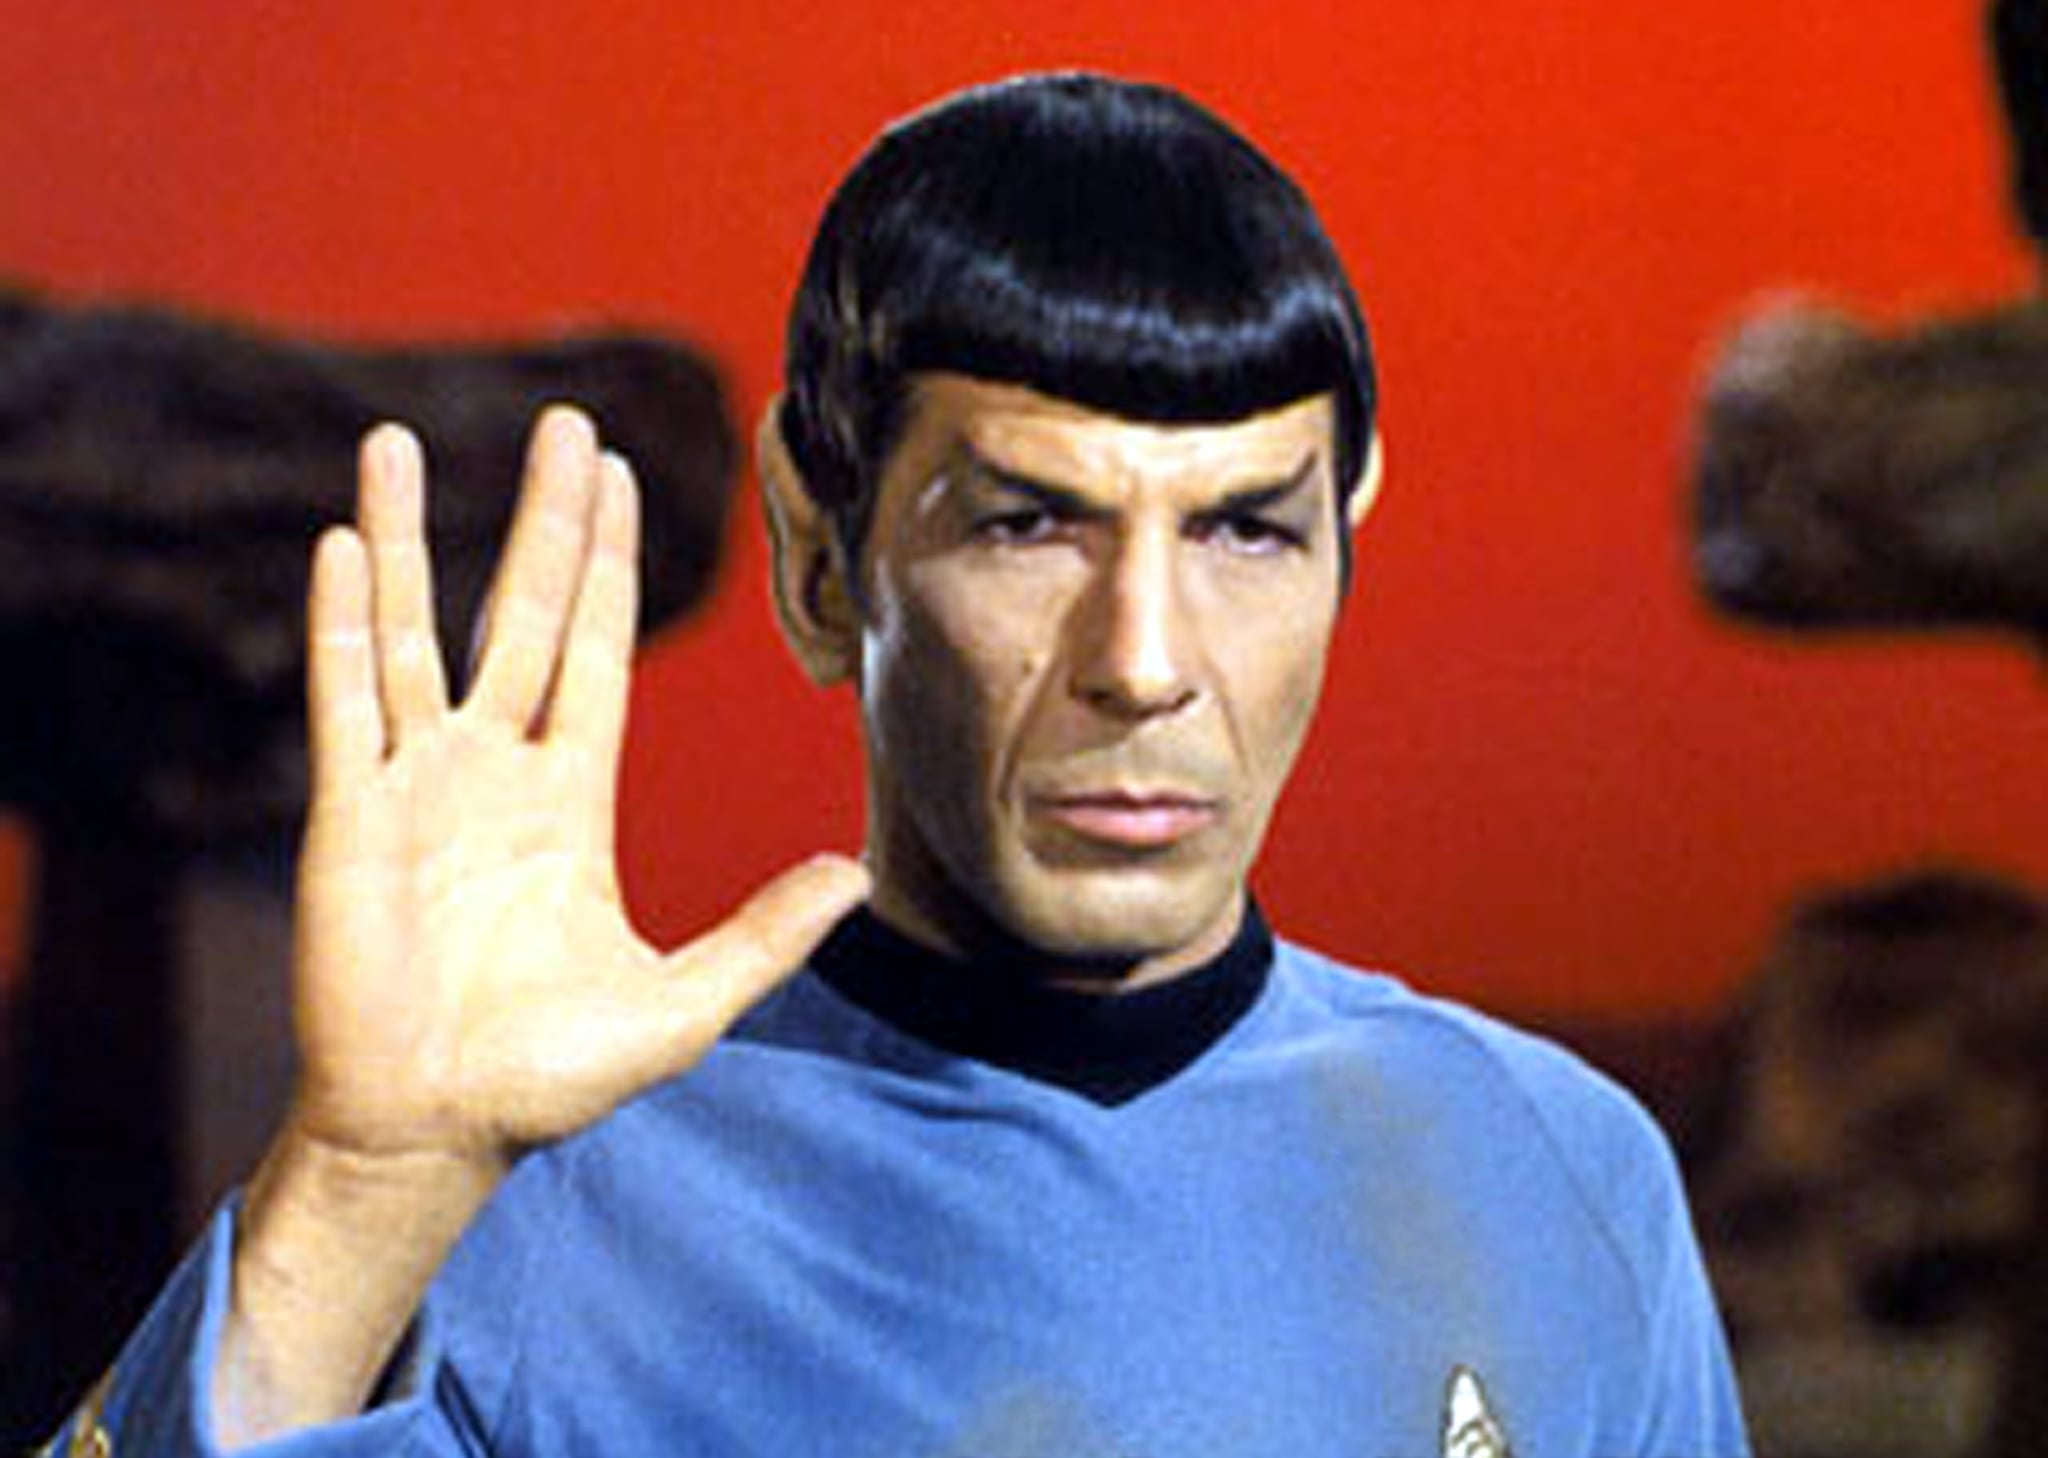 STAR TREK, Leonard Nimoy, on Vulcan, giving the 'Live Long & Prosper' salute, in Ep#34: 'Amok Time' 9/15/67. (c)Paramount. Courtesy: Everett Collection.